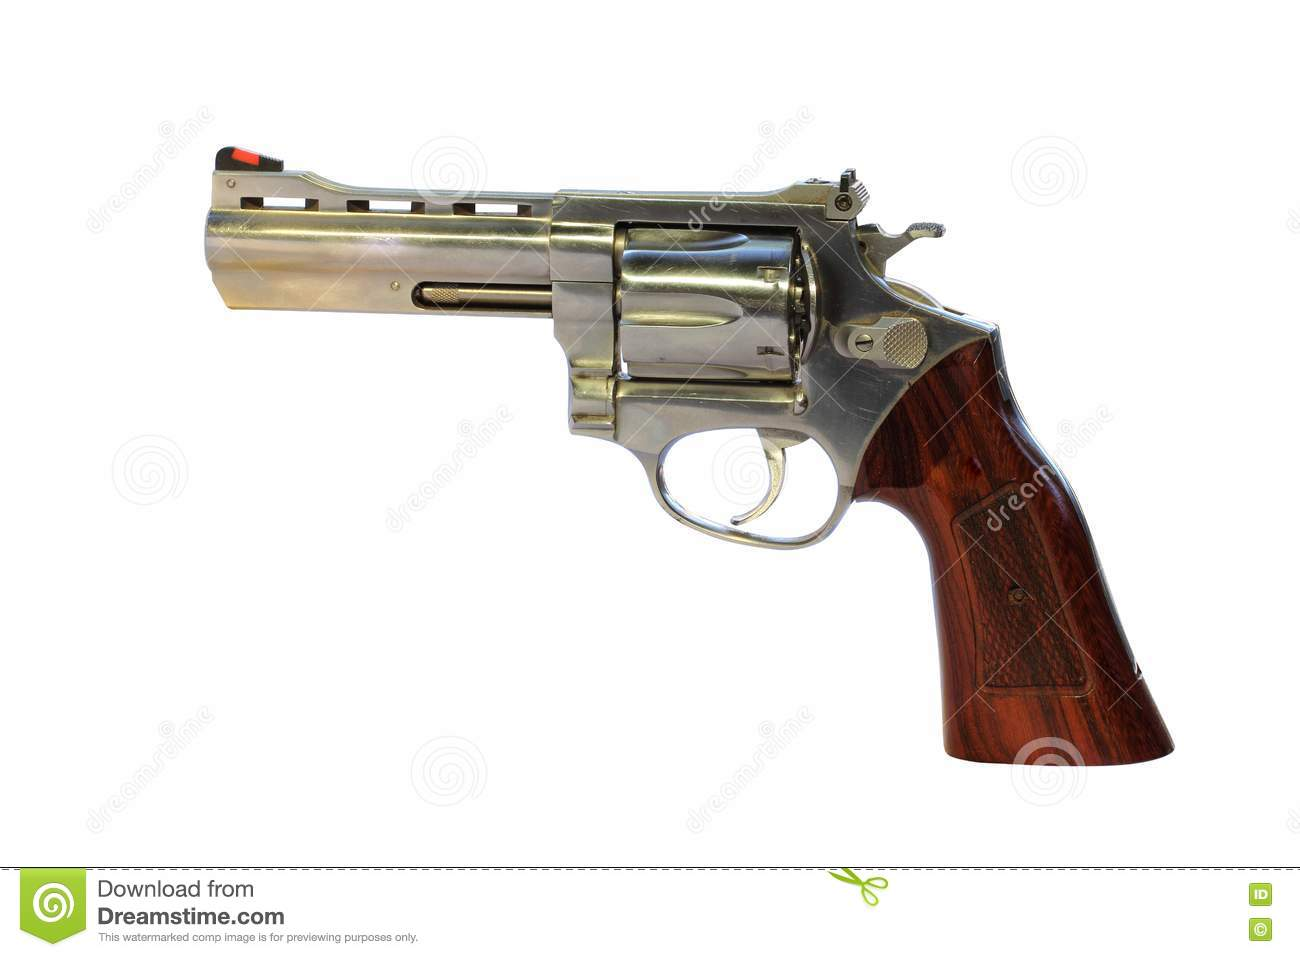 gun white background - photo #2